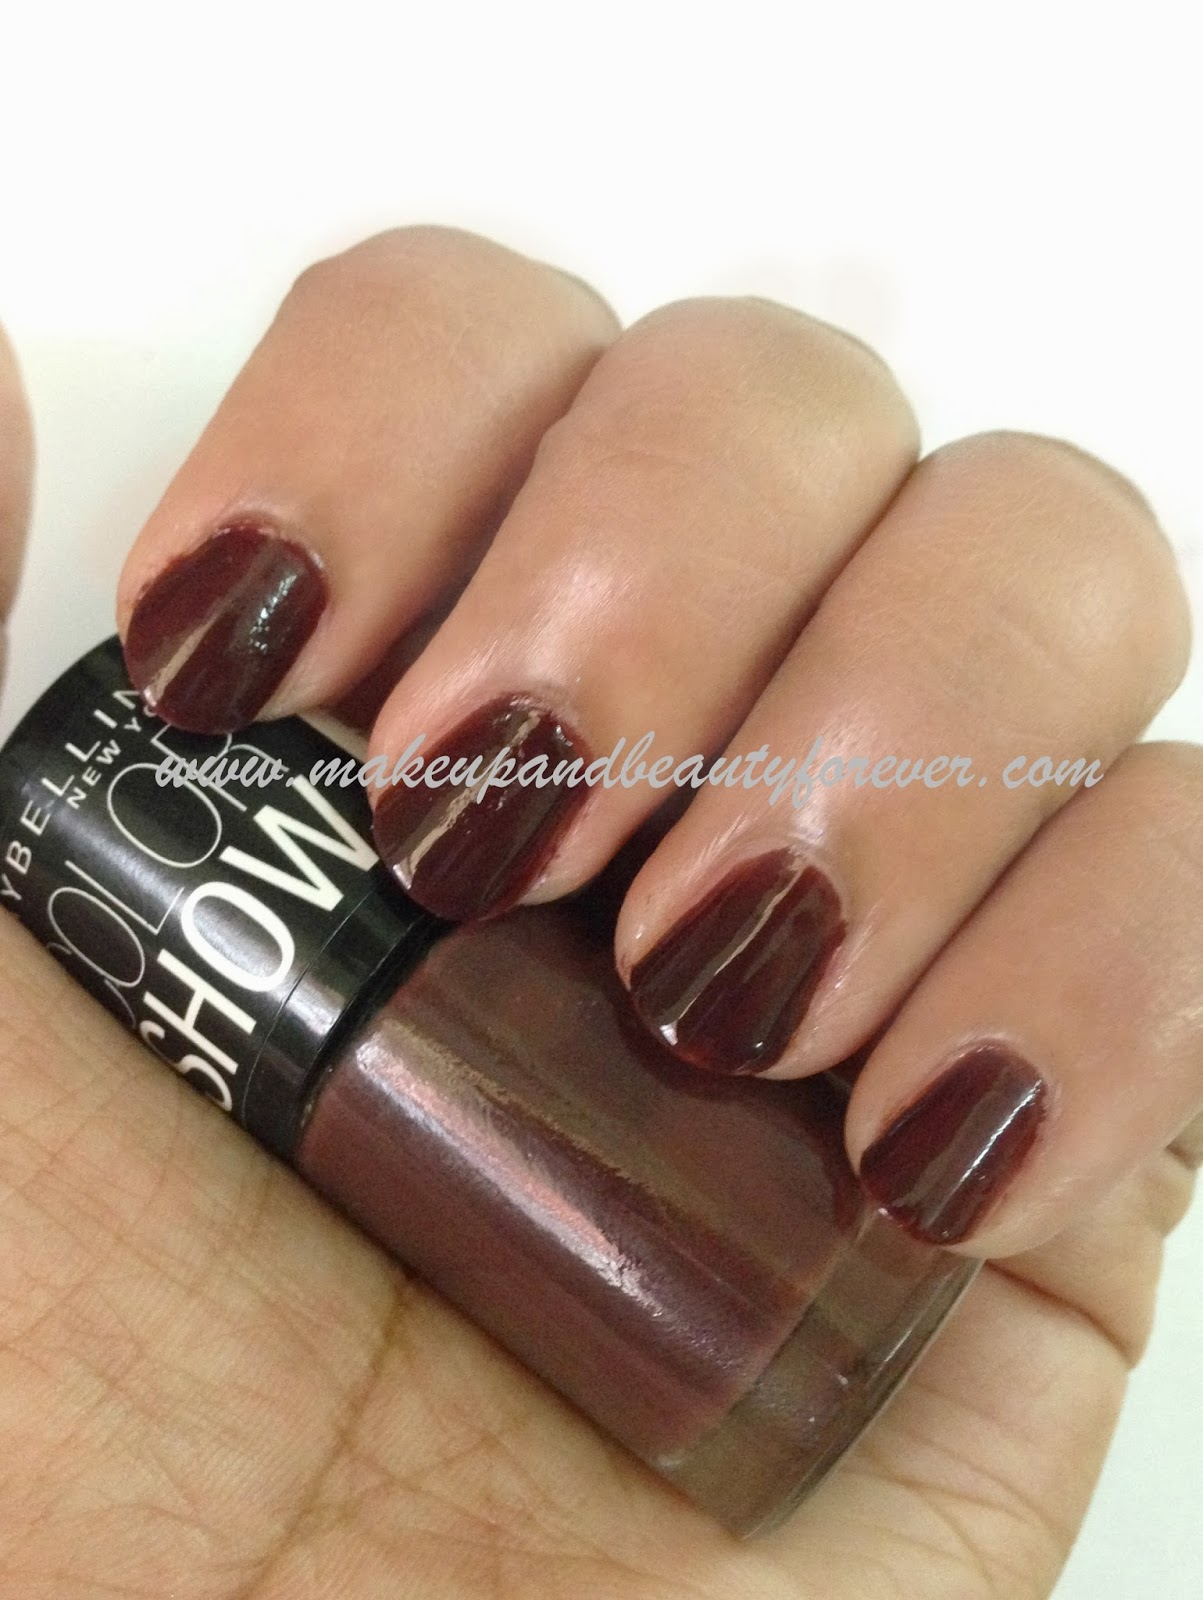 Maybelline Color Show Nail Paints Shades Photos and Swatches